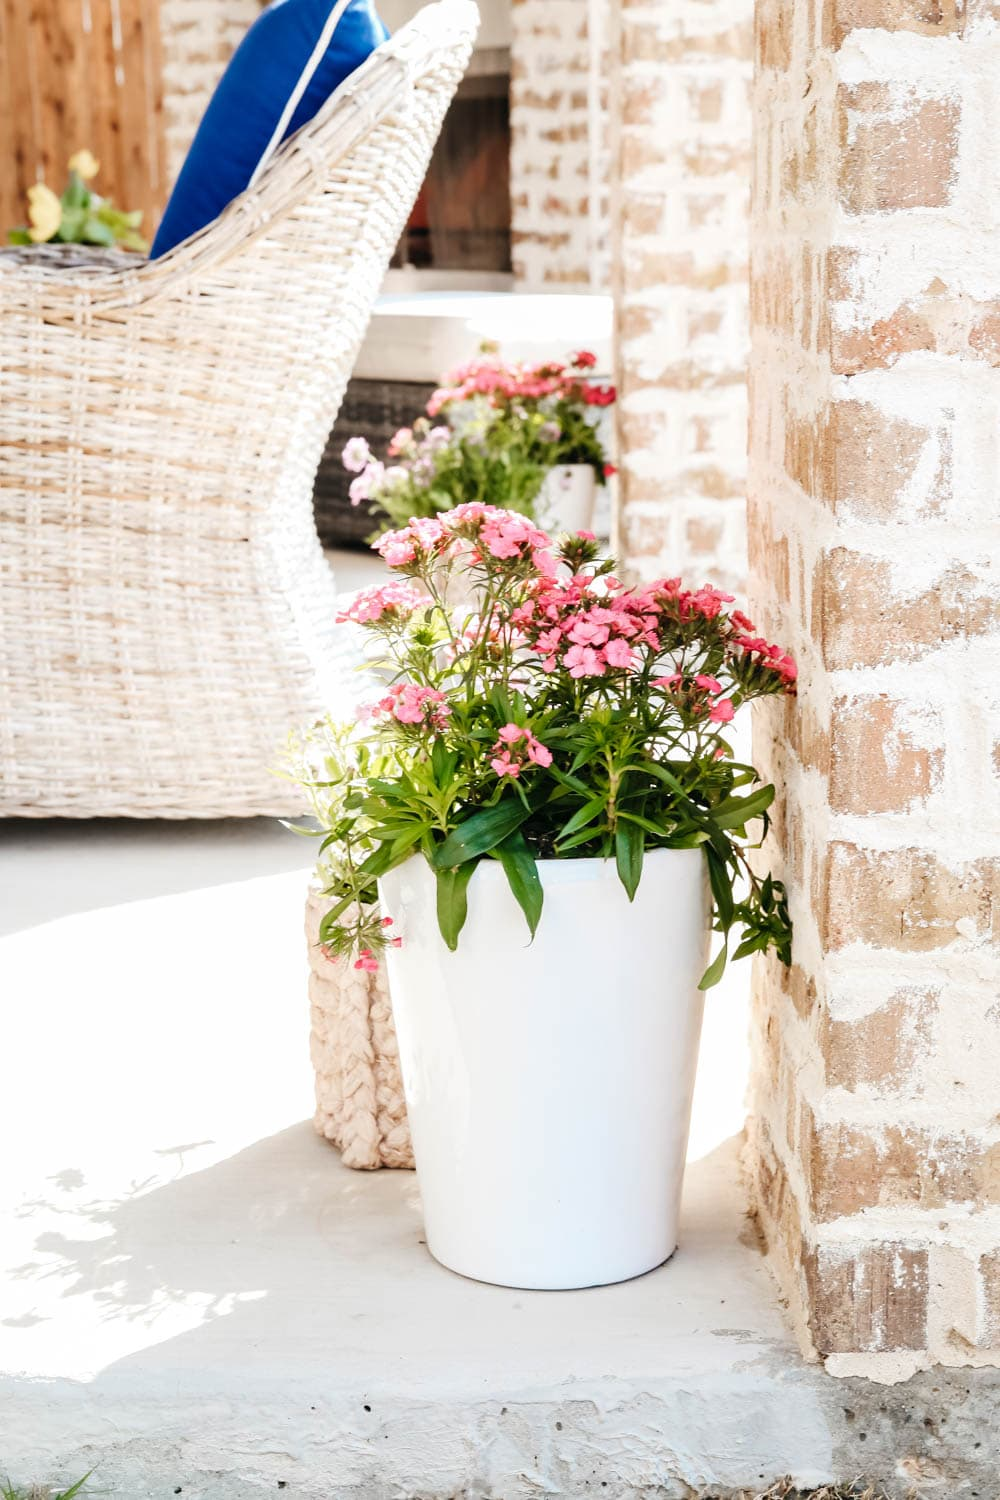 Spring planters on a patio add color. #ABlissfulNest #patio #gardening #outdoor #backyard